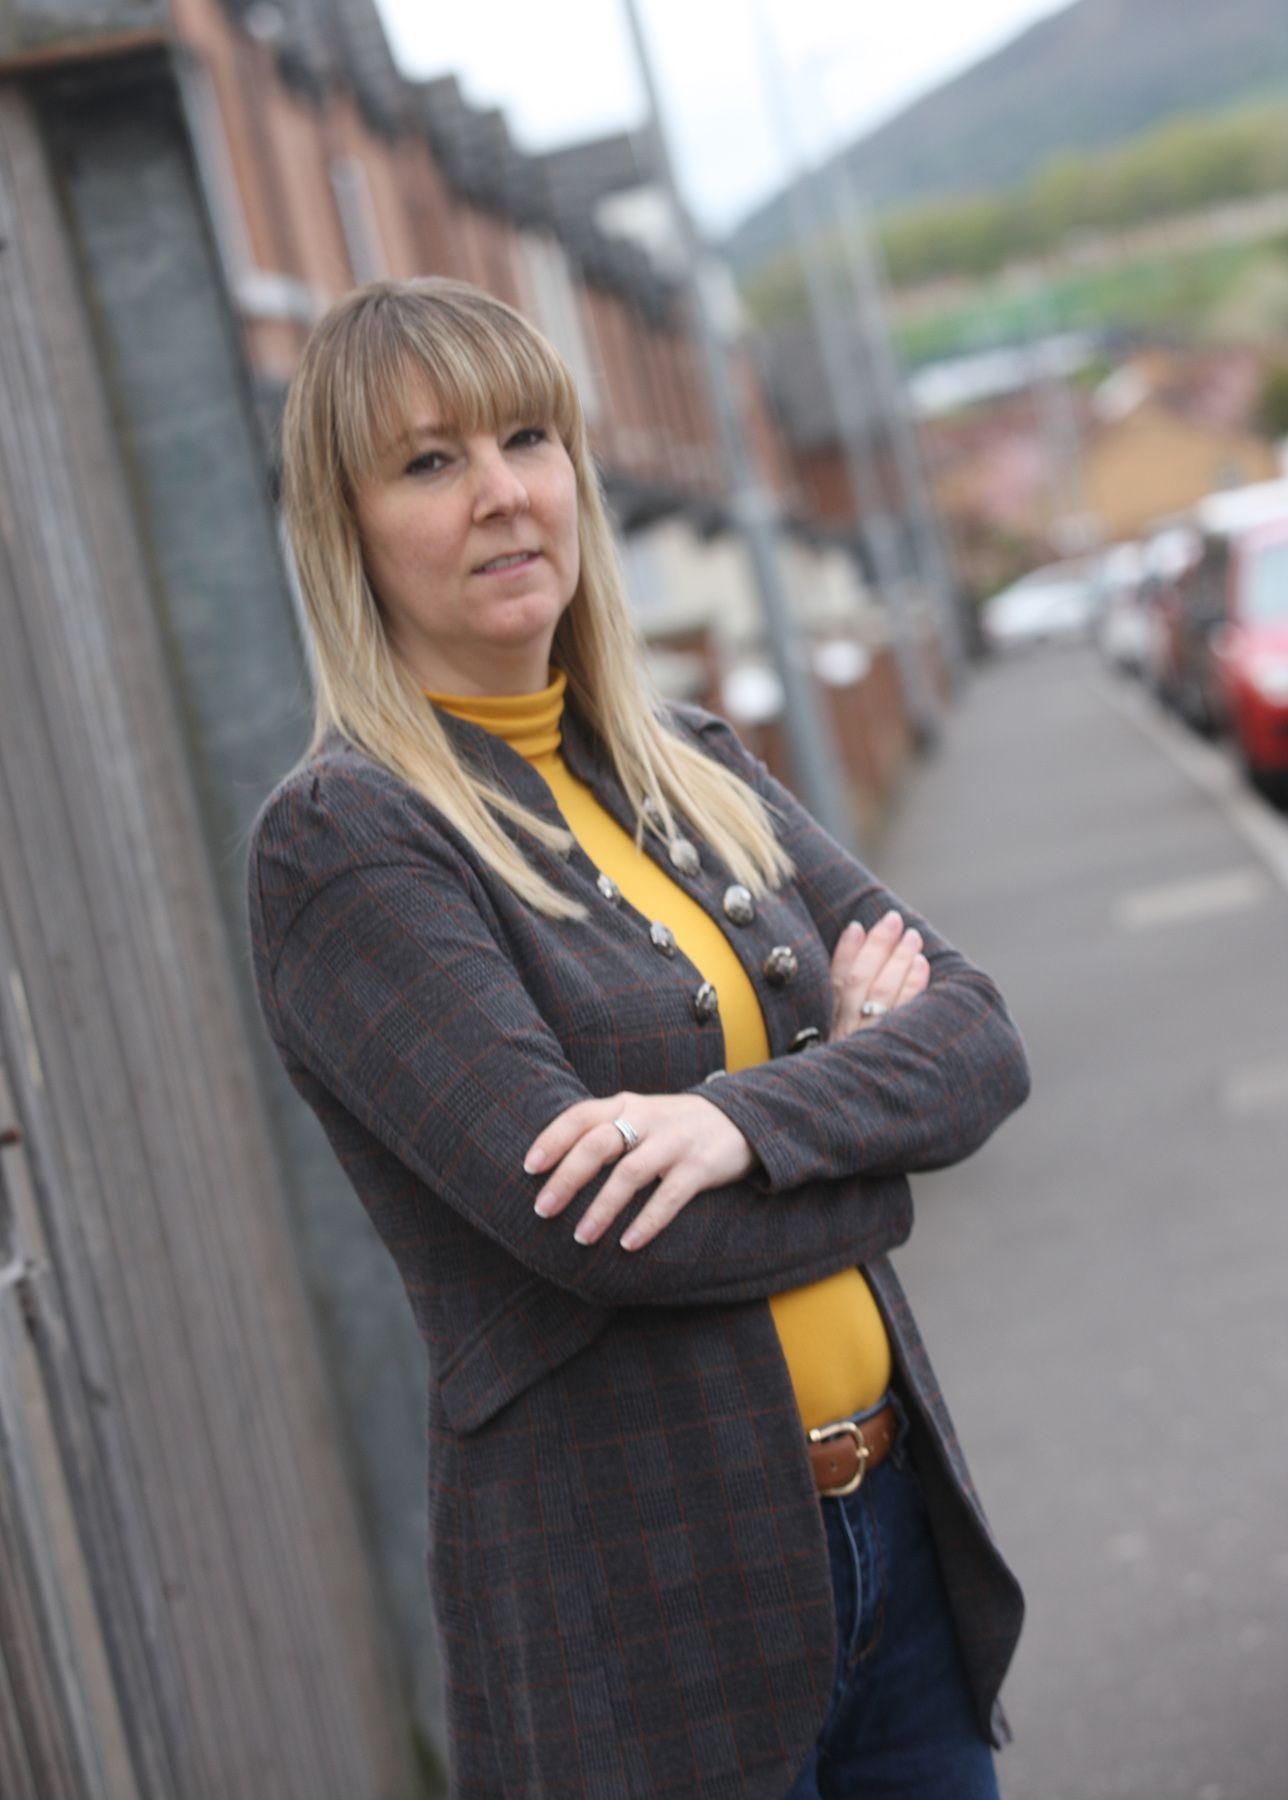 CONCERN: Cllr Claire Canavan issues a warning on break-ins